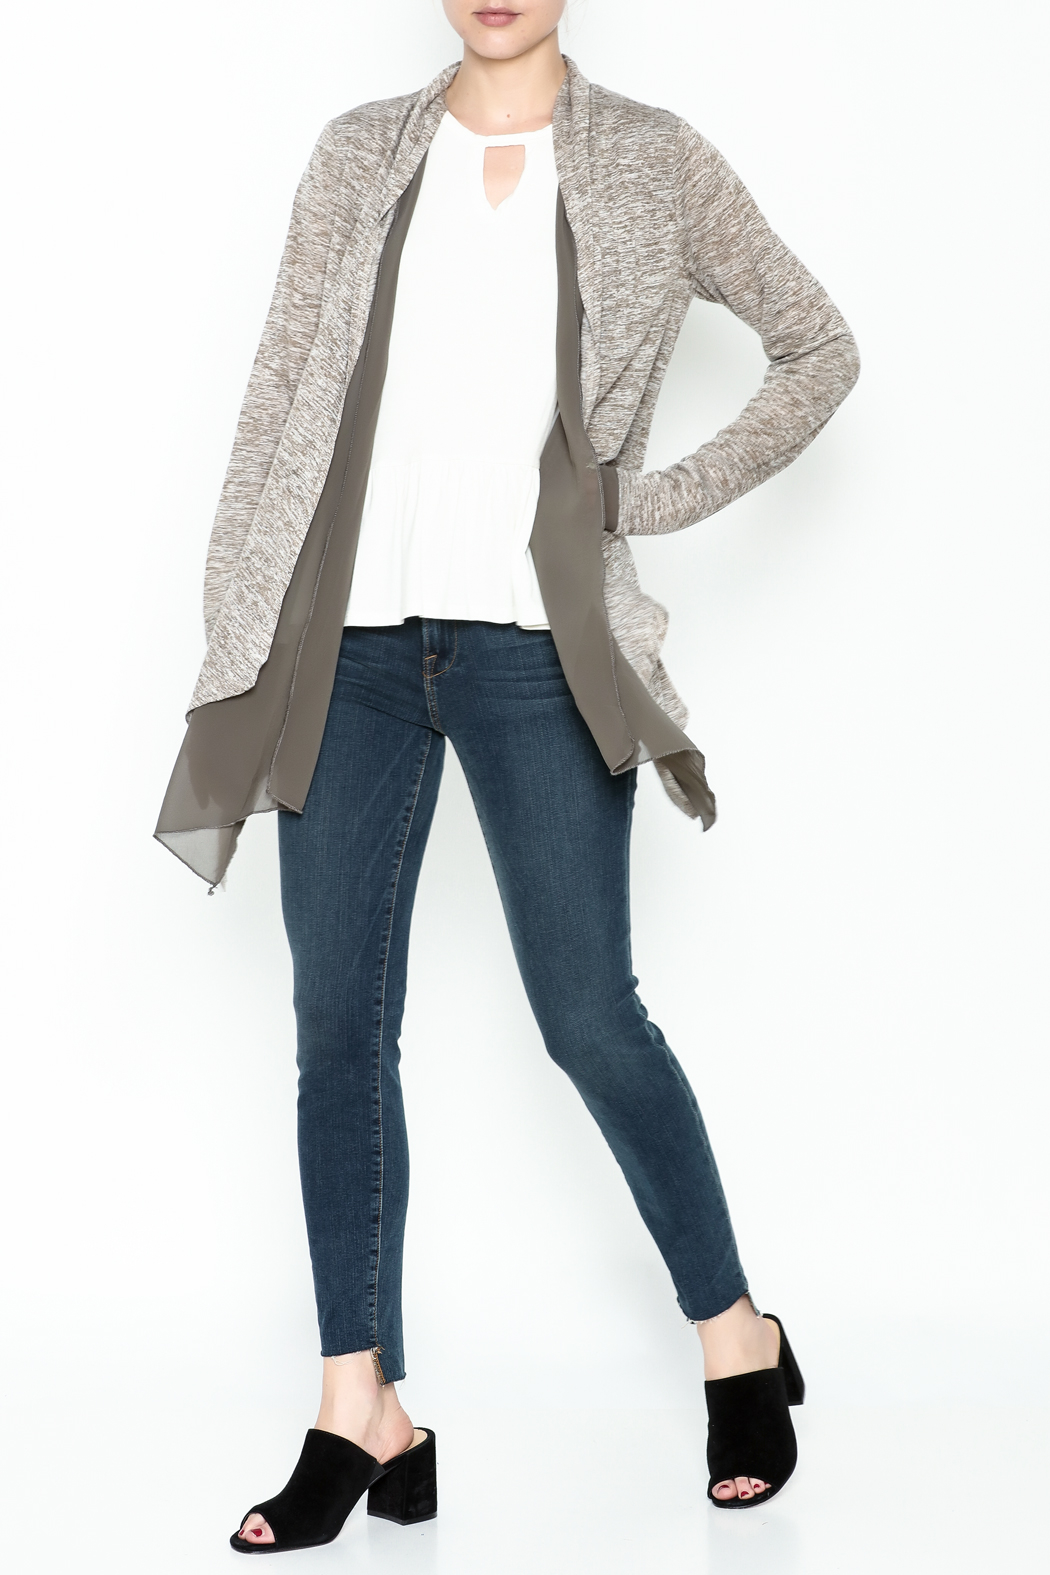 Coco + Carmen Double Layer Cardigan - Side Cropped Image